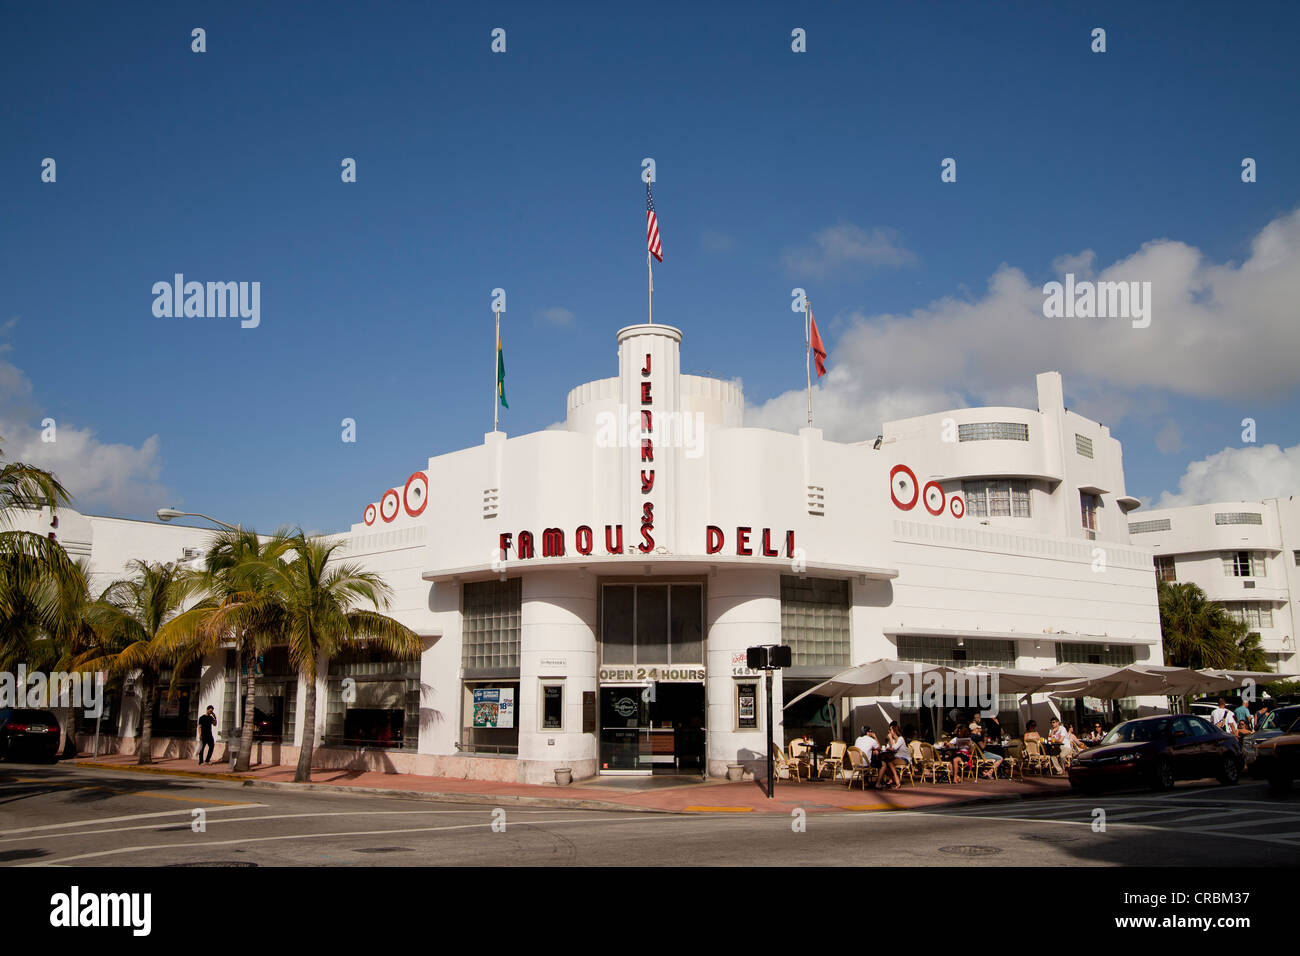 Jerrys Famous Deli in the Art Deco district of South Beach, Miami, Florida, USA - Stock Image